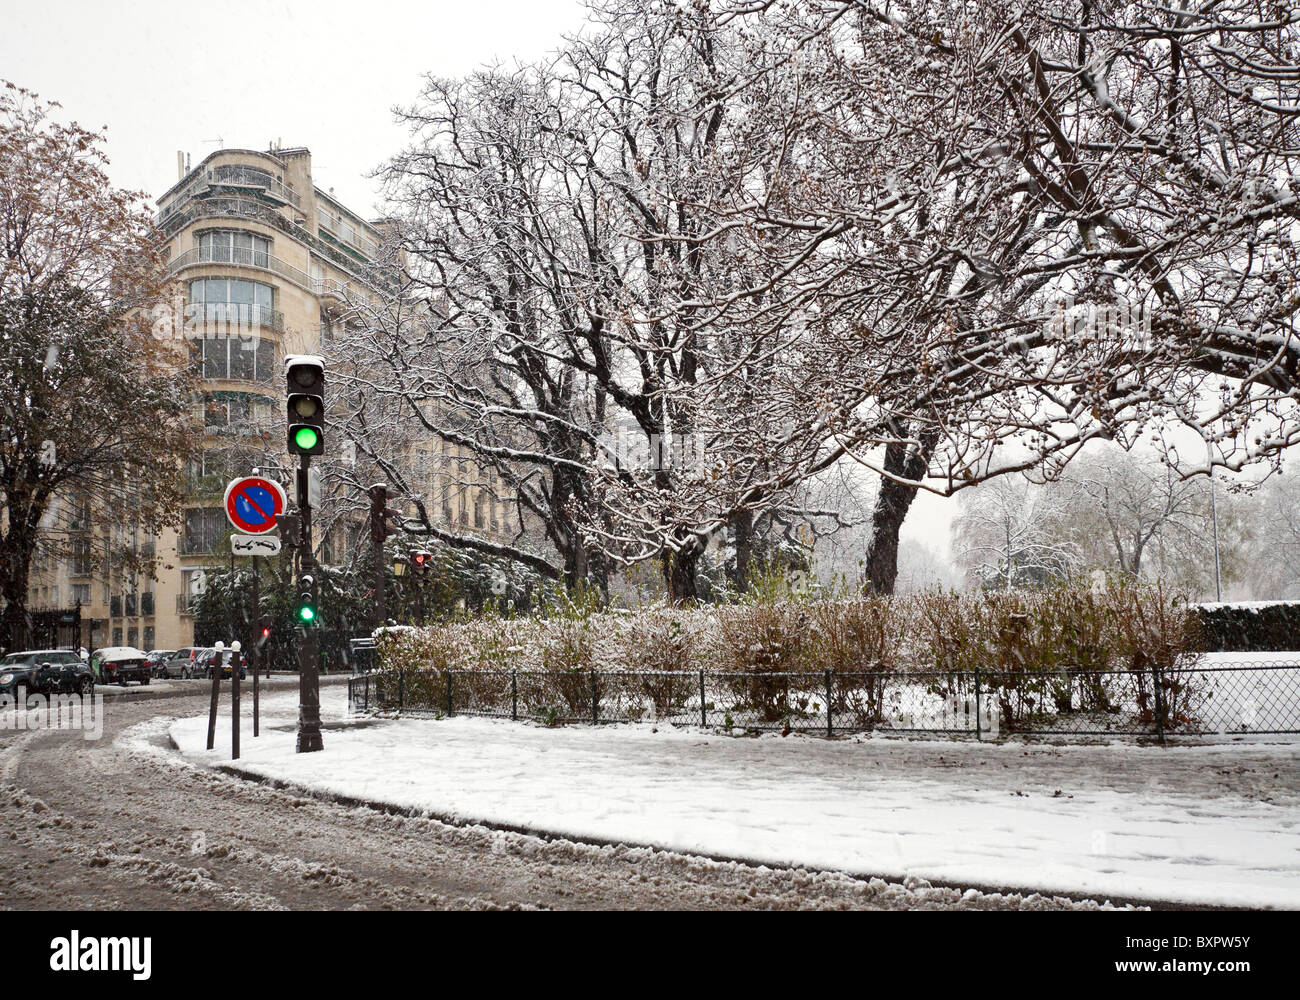 Snow covered trees and slushy streets in an early winter snowstorm in Paris, France - Stock Image